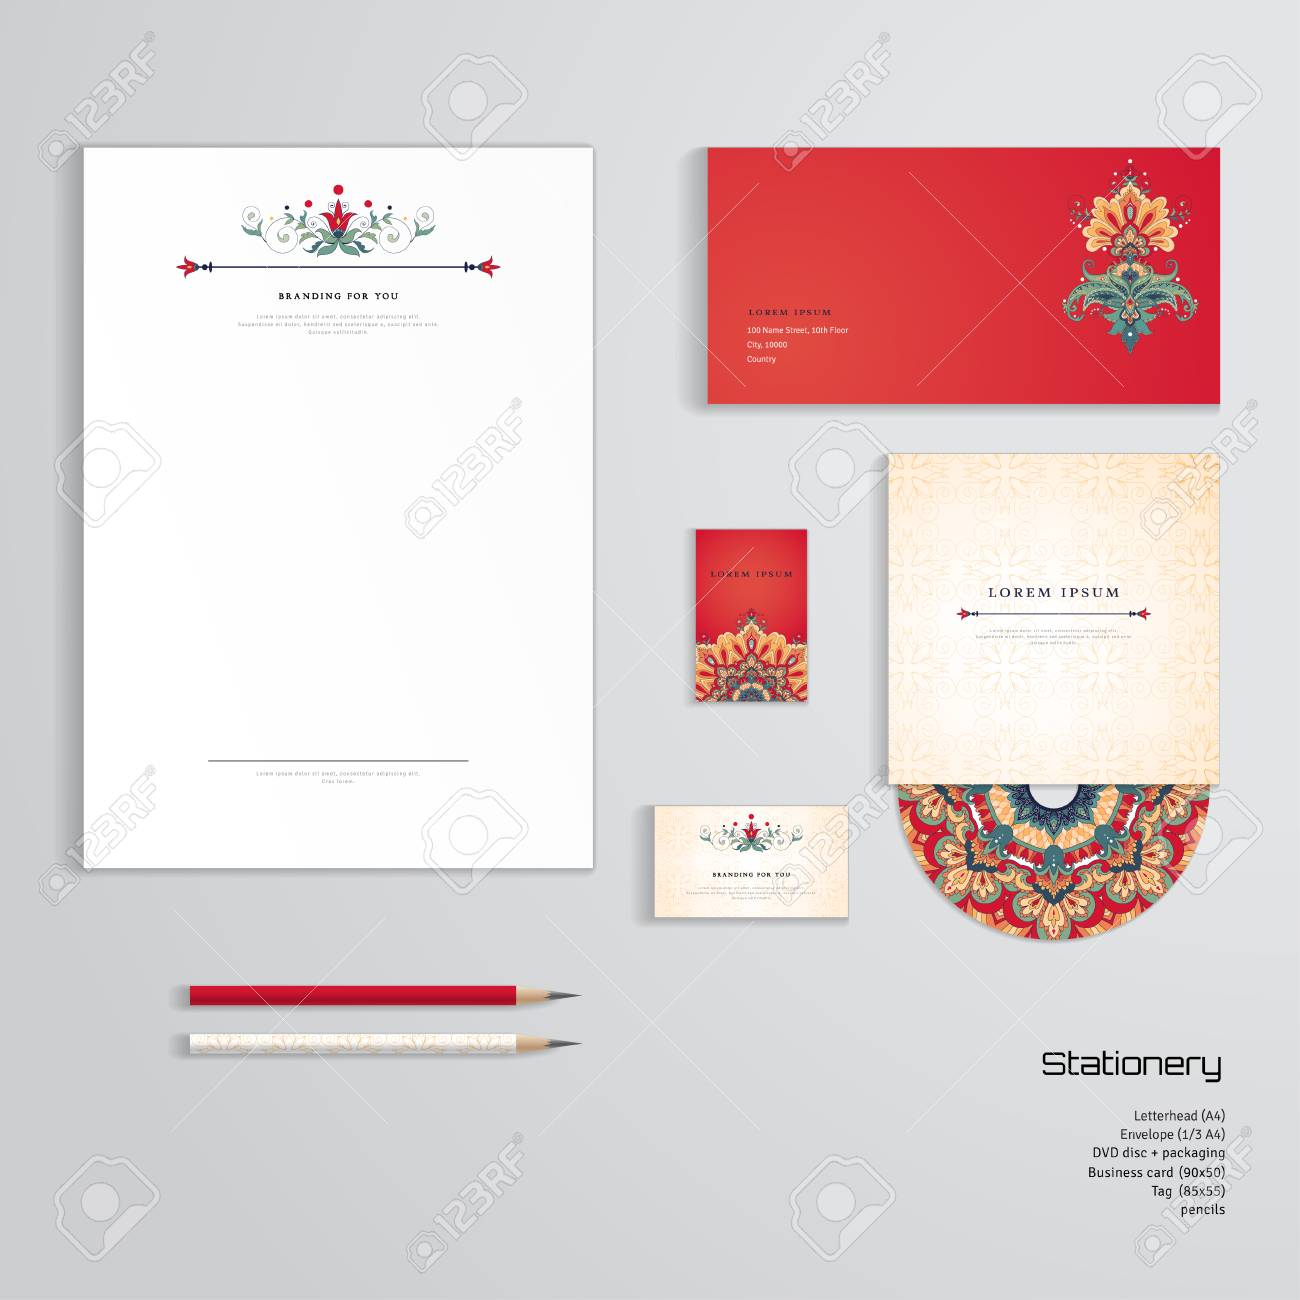 Vector identity templates letterhead envelope business card vector identity templates letterhead envelope business card tag disc with packaging fbccfo Gallery